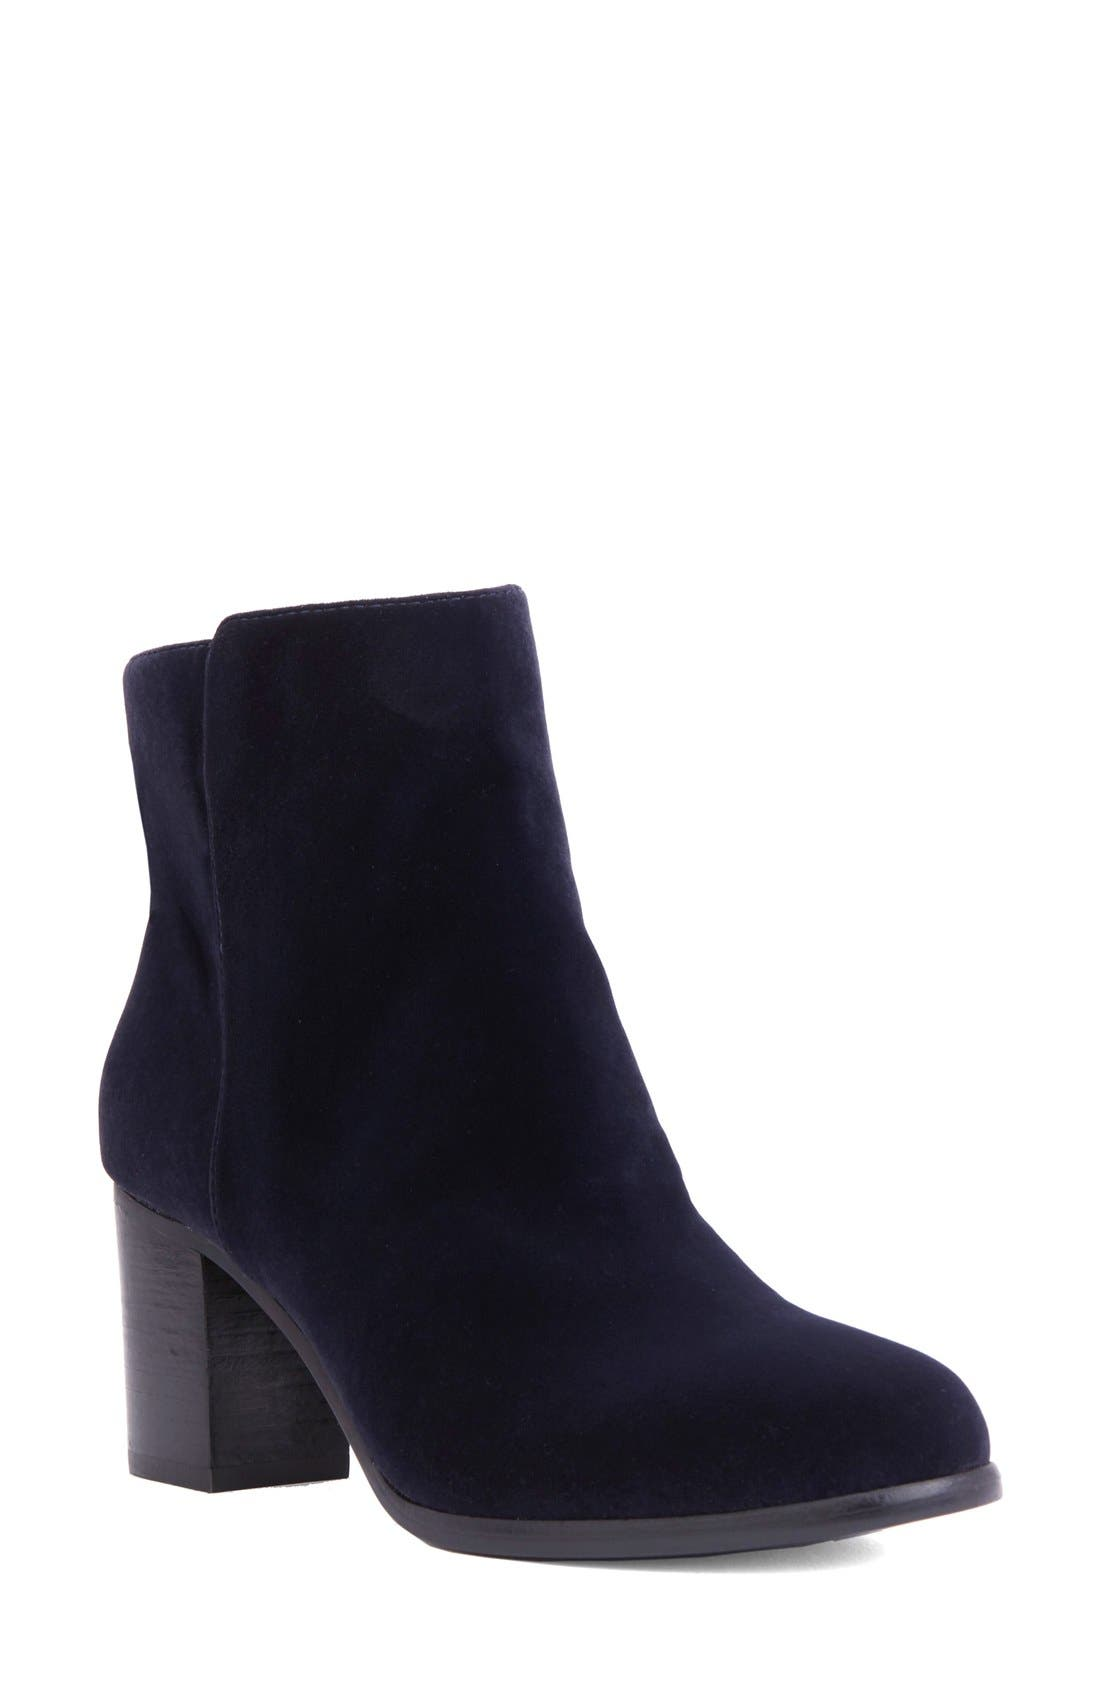 Shoes of Prey Block Heel Bootie (Women)